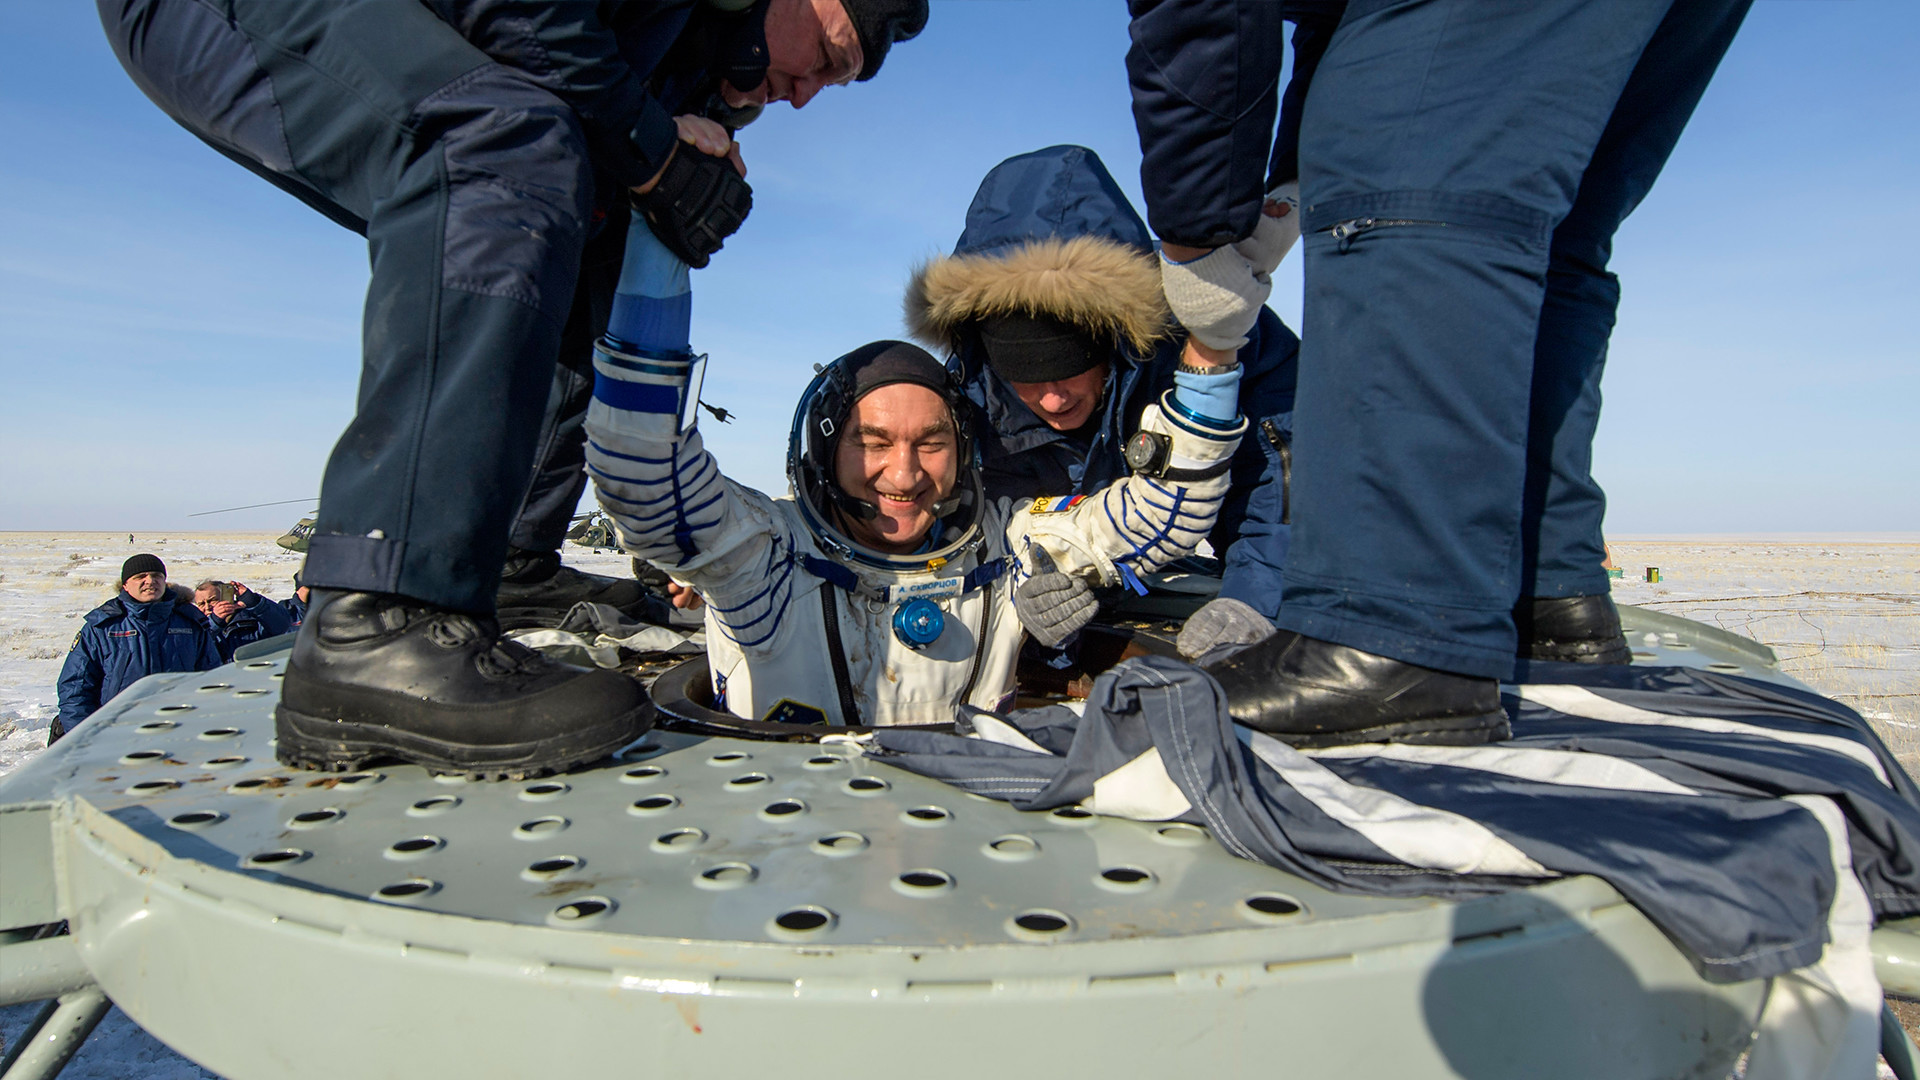 Roscosmos cosmonaut Alexander Skvortsov is helped out of the Soyuz MS-13 spacecraft just minutes after he landed their Soyuz MS-13 capsule in a remote area near the town of Zhezkazgan, on February 6, 2020 in Kazakhstan